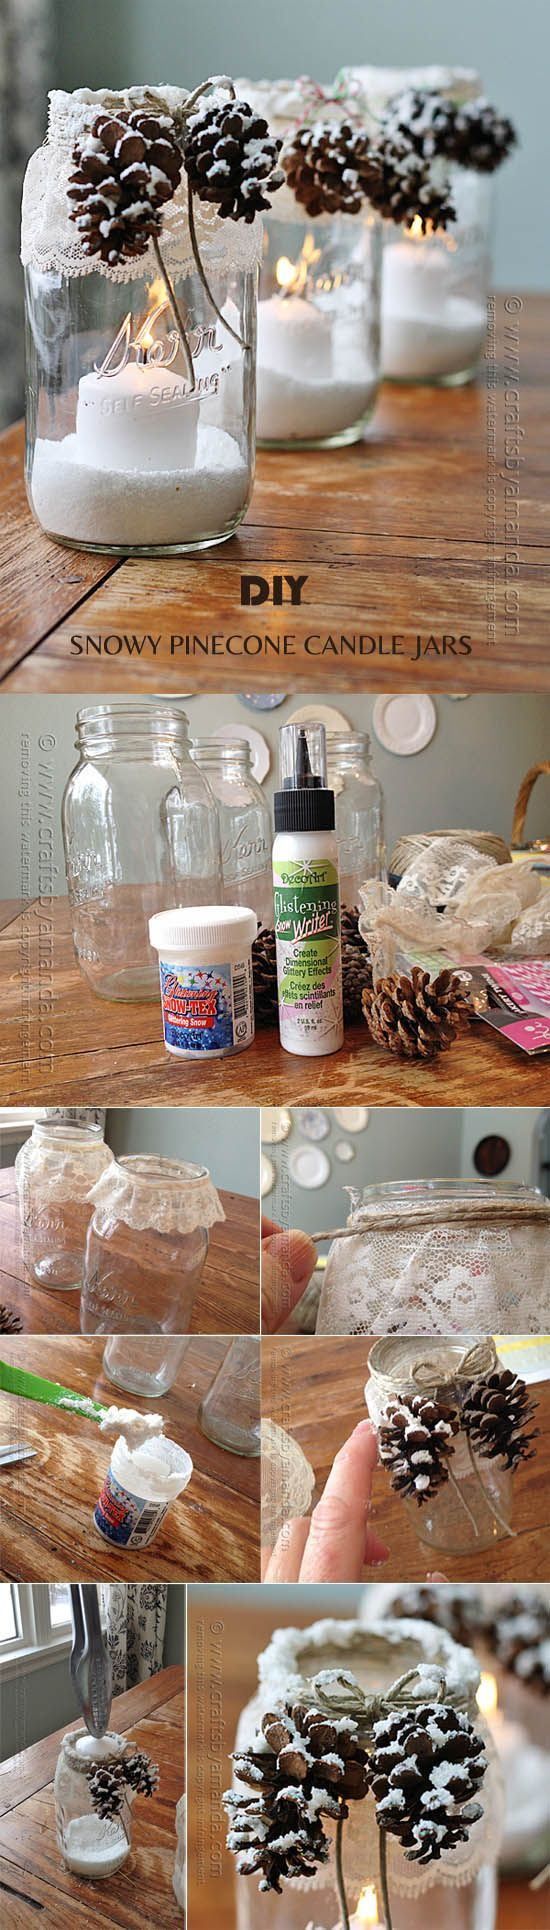 creative and affordable diy wedding centerpieces candle jars